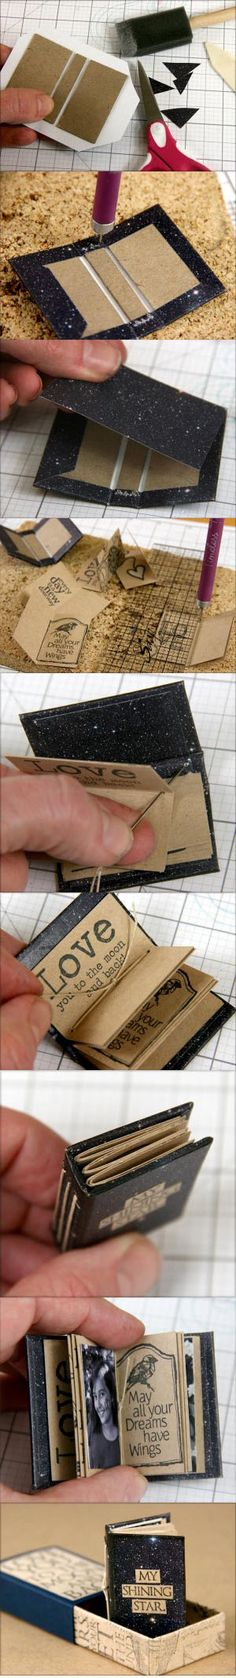 Constellations Mini Album Tutorial #clubscrap http://clubscrap.com/constellations-matchbox-mini-album-tutorial/ Más